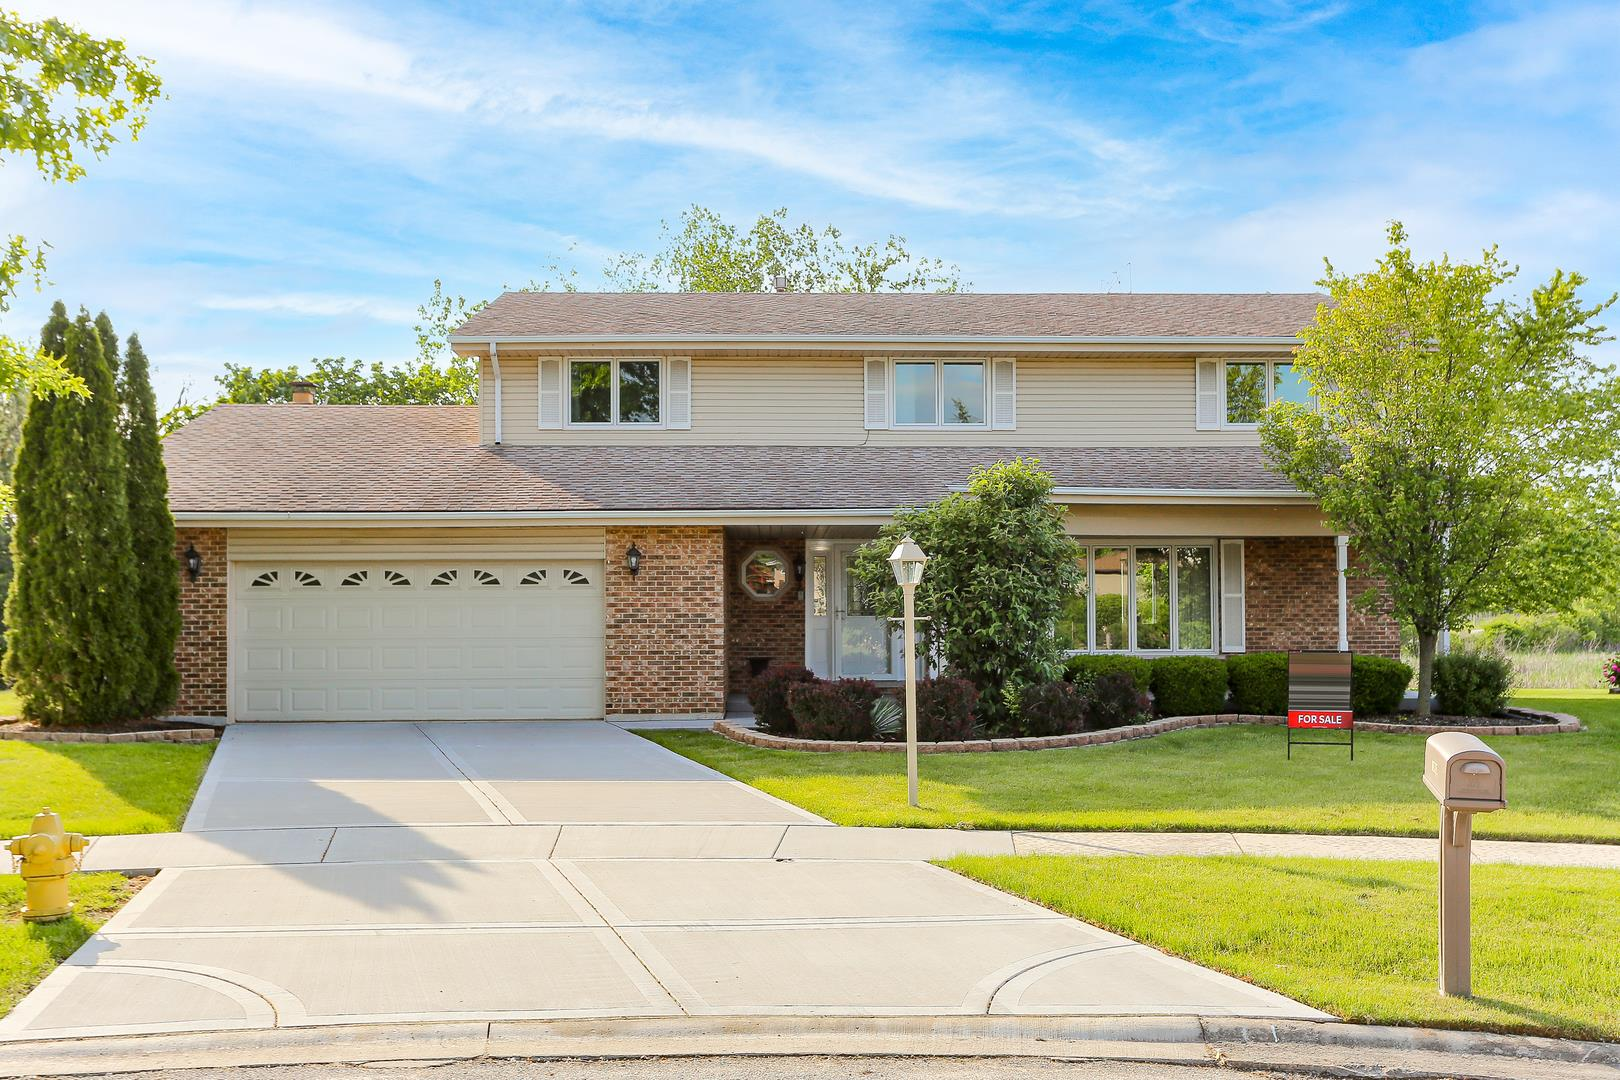 13810 Old Spanish Court, Orland Park, IL 60467 - #: 11101452